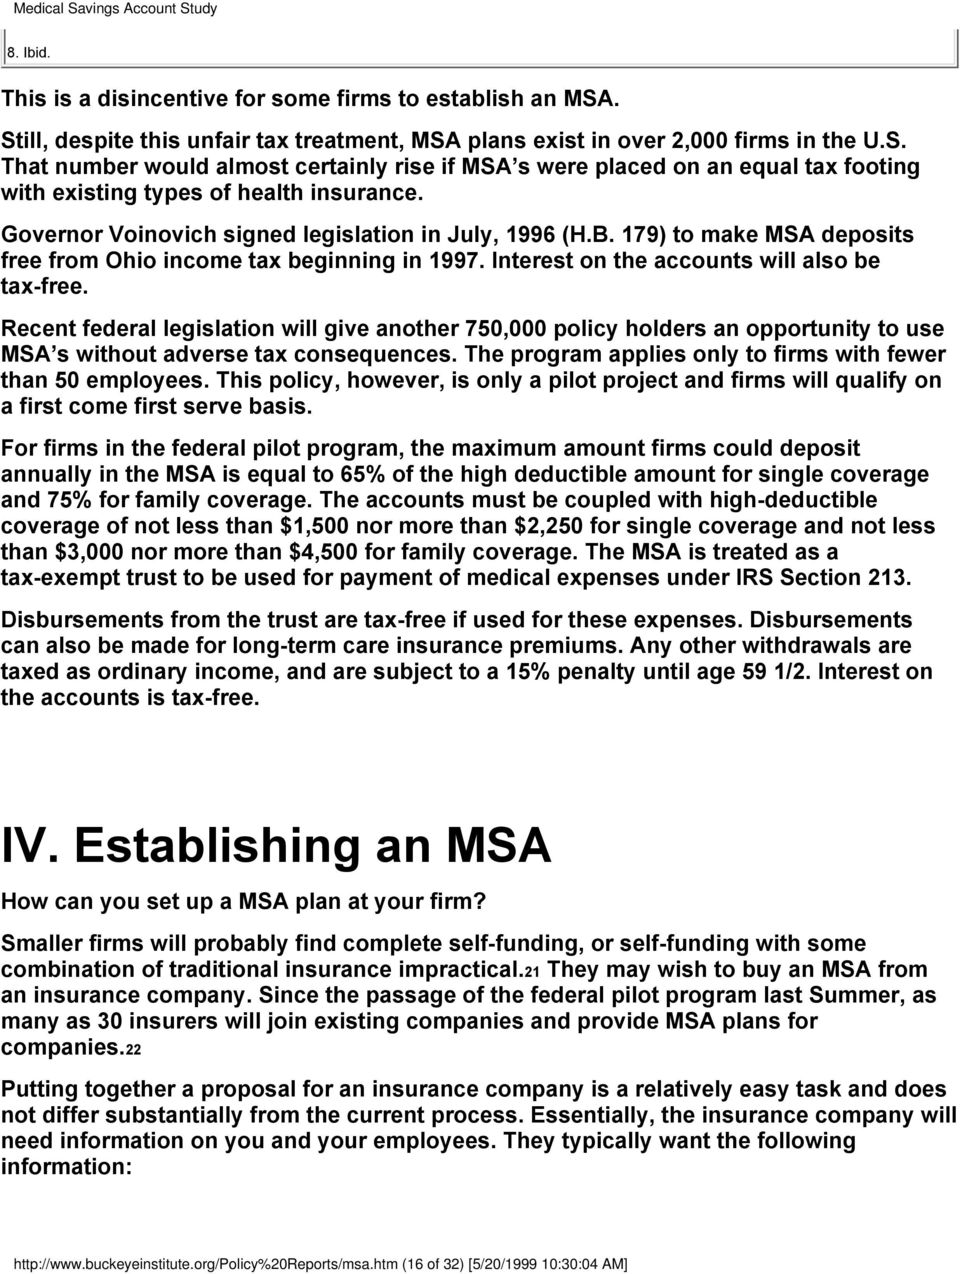 Recent federal legislation will give another 750,000 policy holders an opportunity to use MSA s without adverse tax consequences. The program applies only to firms with fewer than 50 employees.